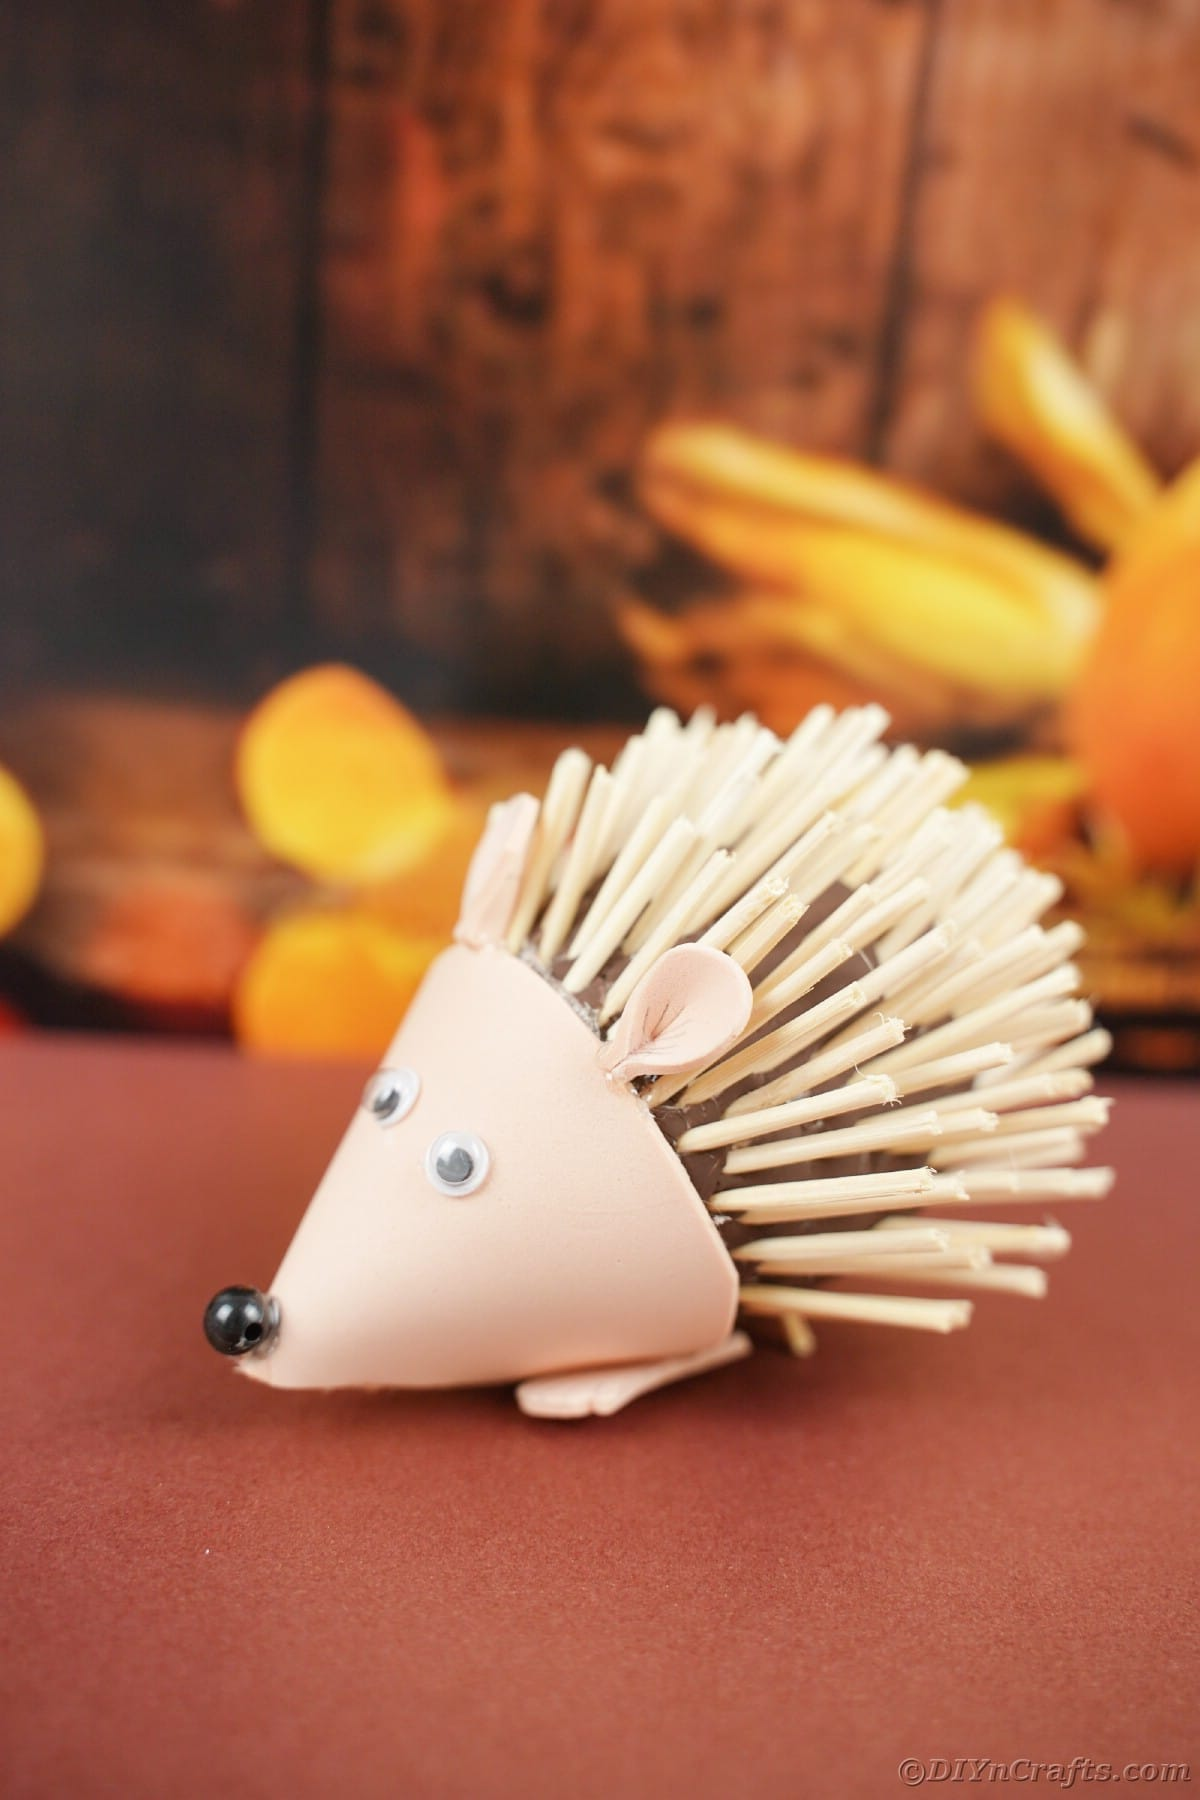 Mini hedgehog toy on brown table in front of fall scene